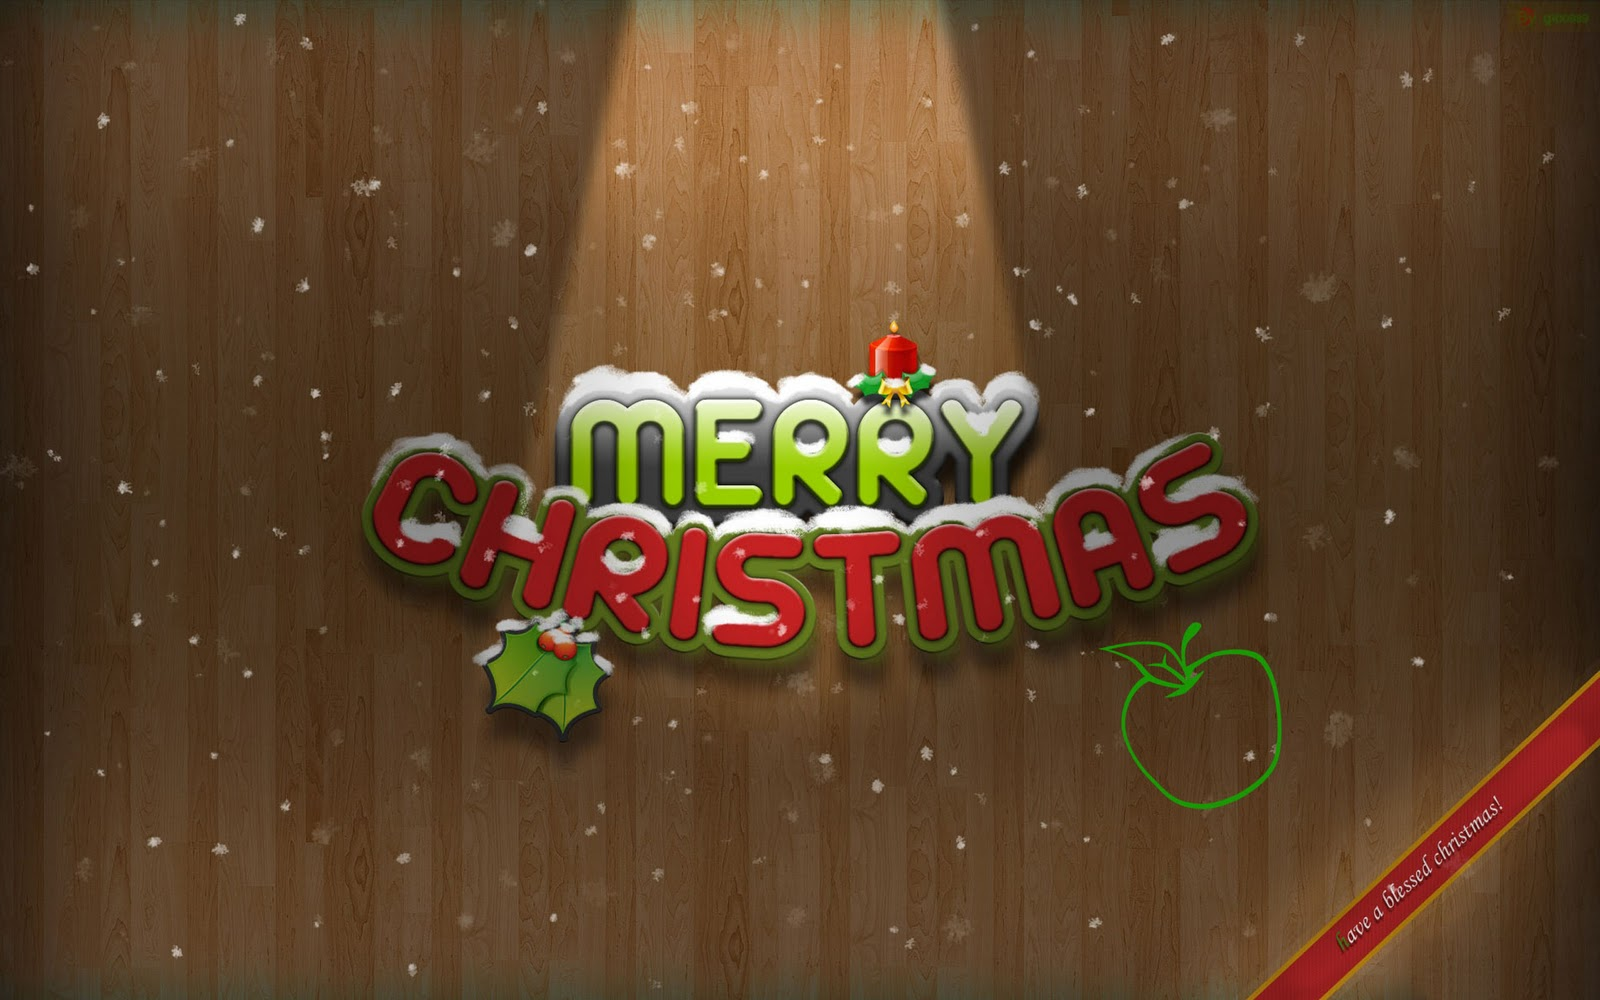 download merry christmas desktop wallpaper 1600x1000